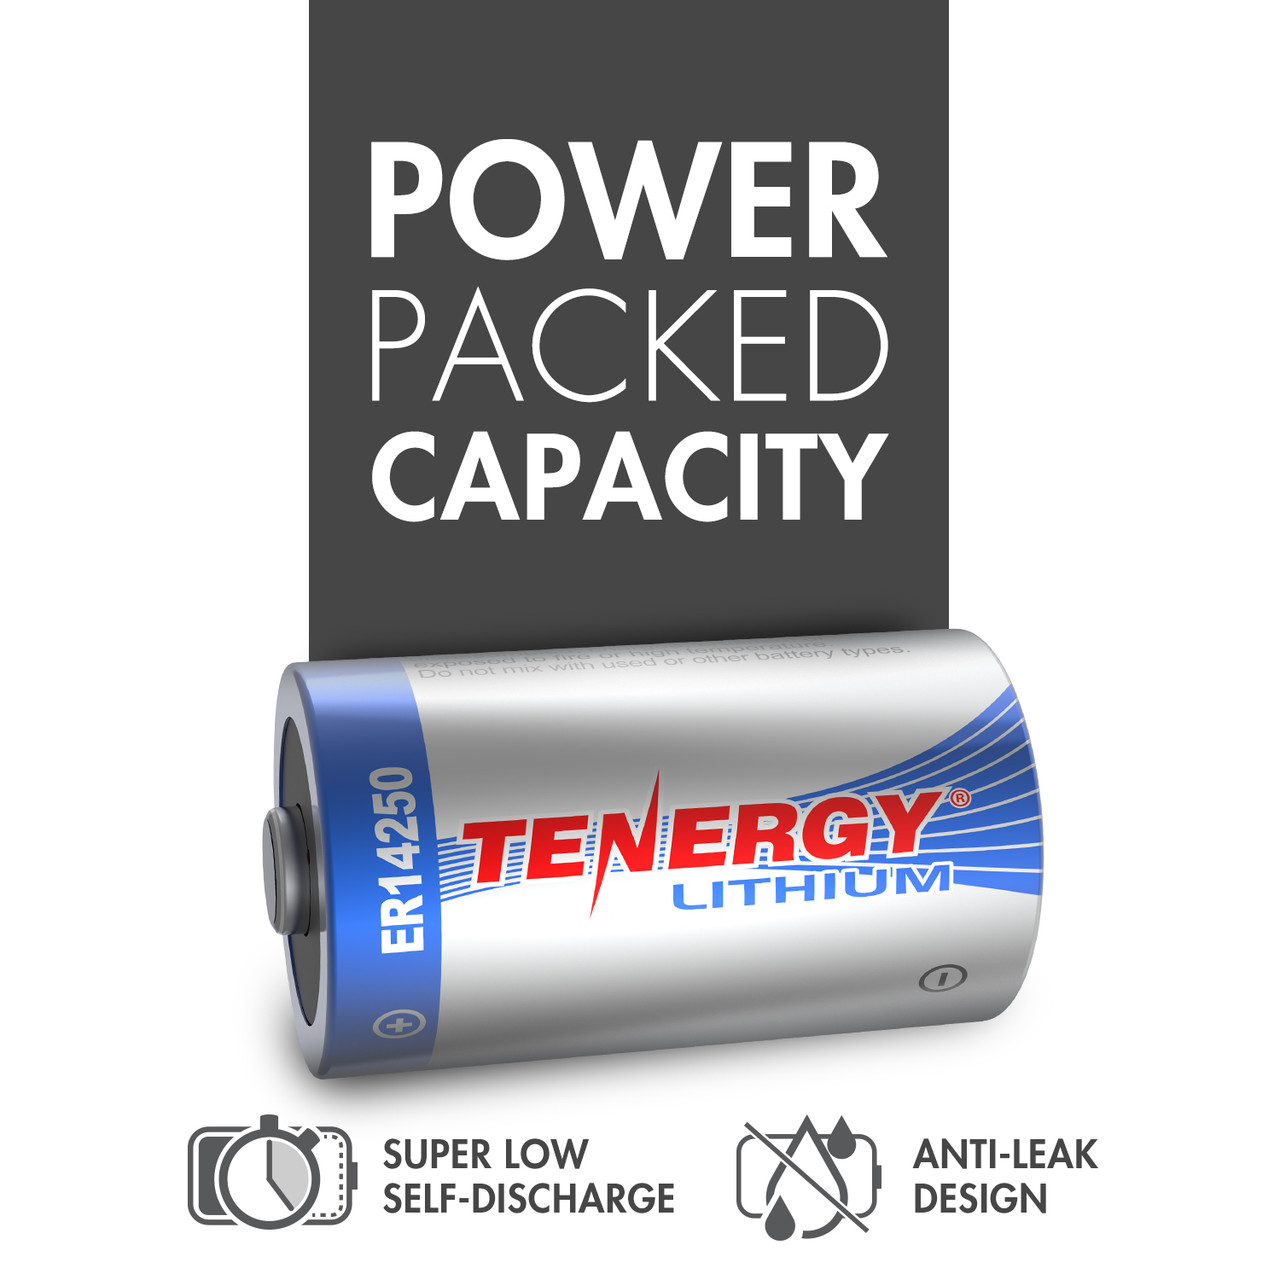 Tenergy Primary Lithium Thionyl Chloride Battery 1/2 AA 3.6V 1200mAh (ER14250) (non Rechargeable) - 10 Pack